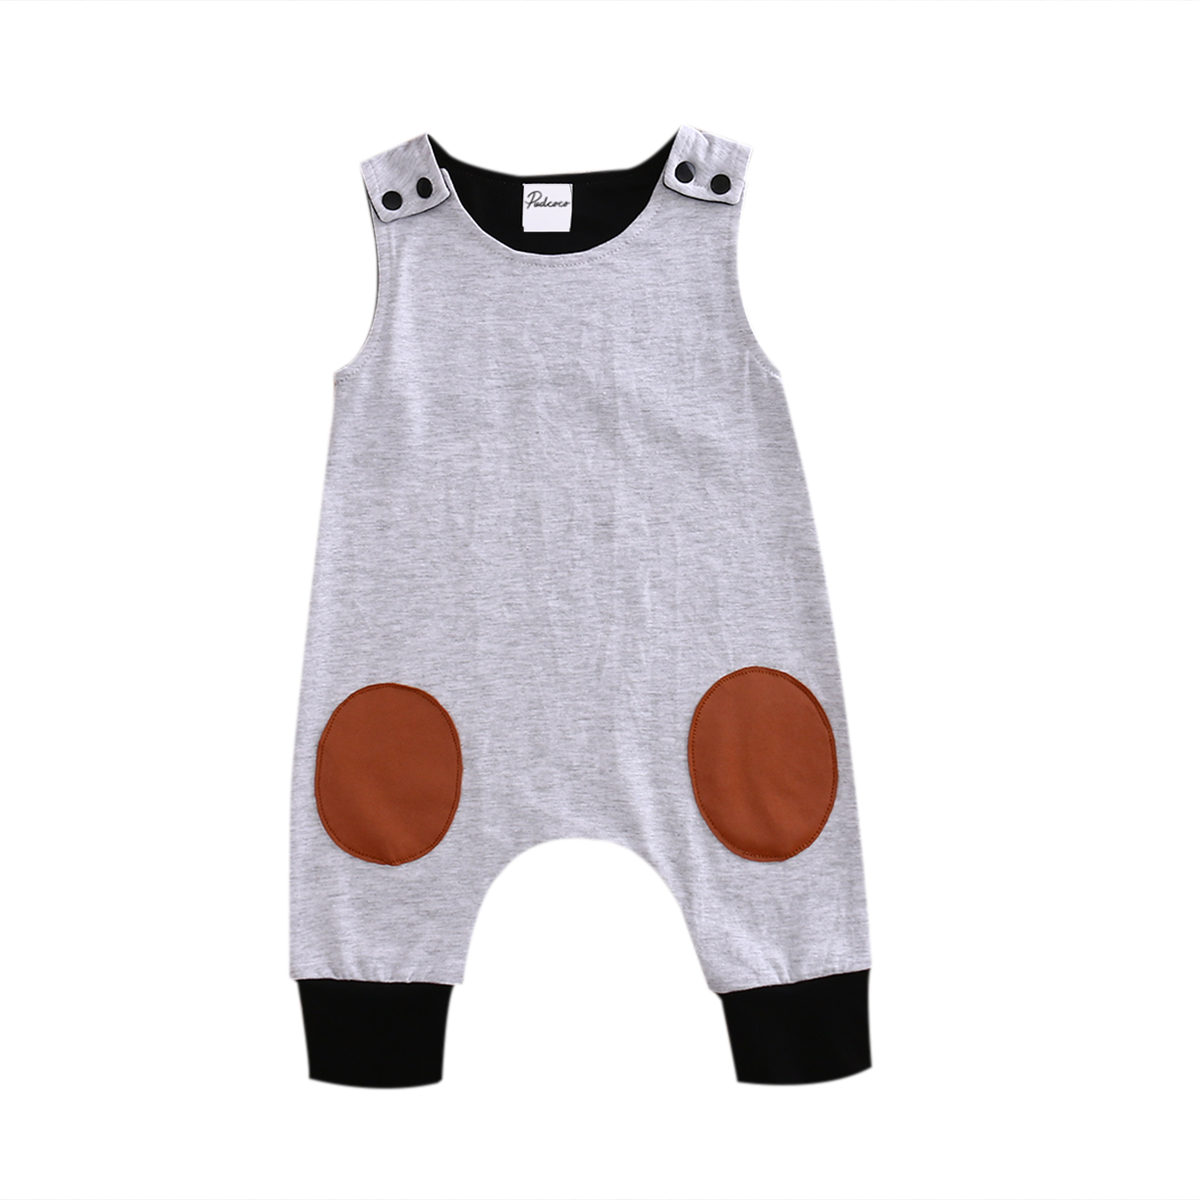 Pudcoco 2017 Newborn Kids Baby Boys Girls Clothes Sleeveless Gray Romper Jumpsuit Summer Cute Cotton Outfits 2017 summer toddler kids girls striped baby romper off shoulder flare sleeve cotton clothes jumpsuit outfits sunsuit 0 4t